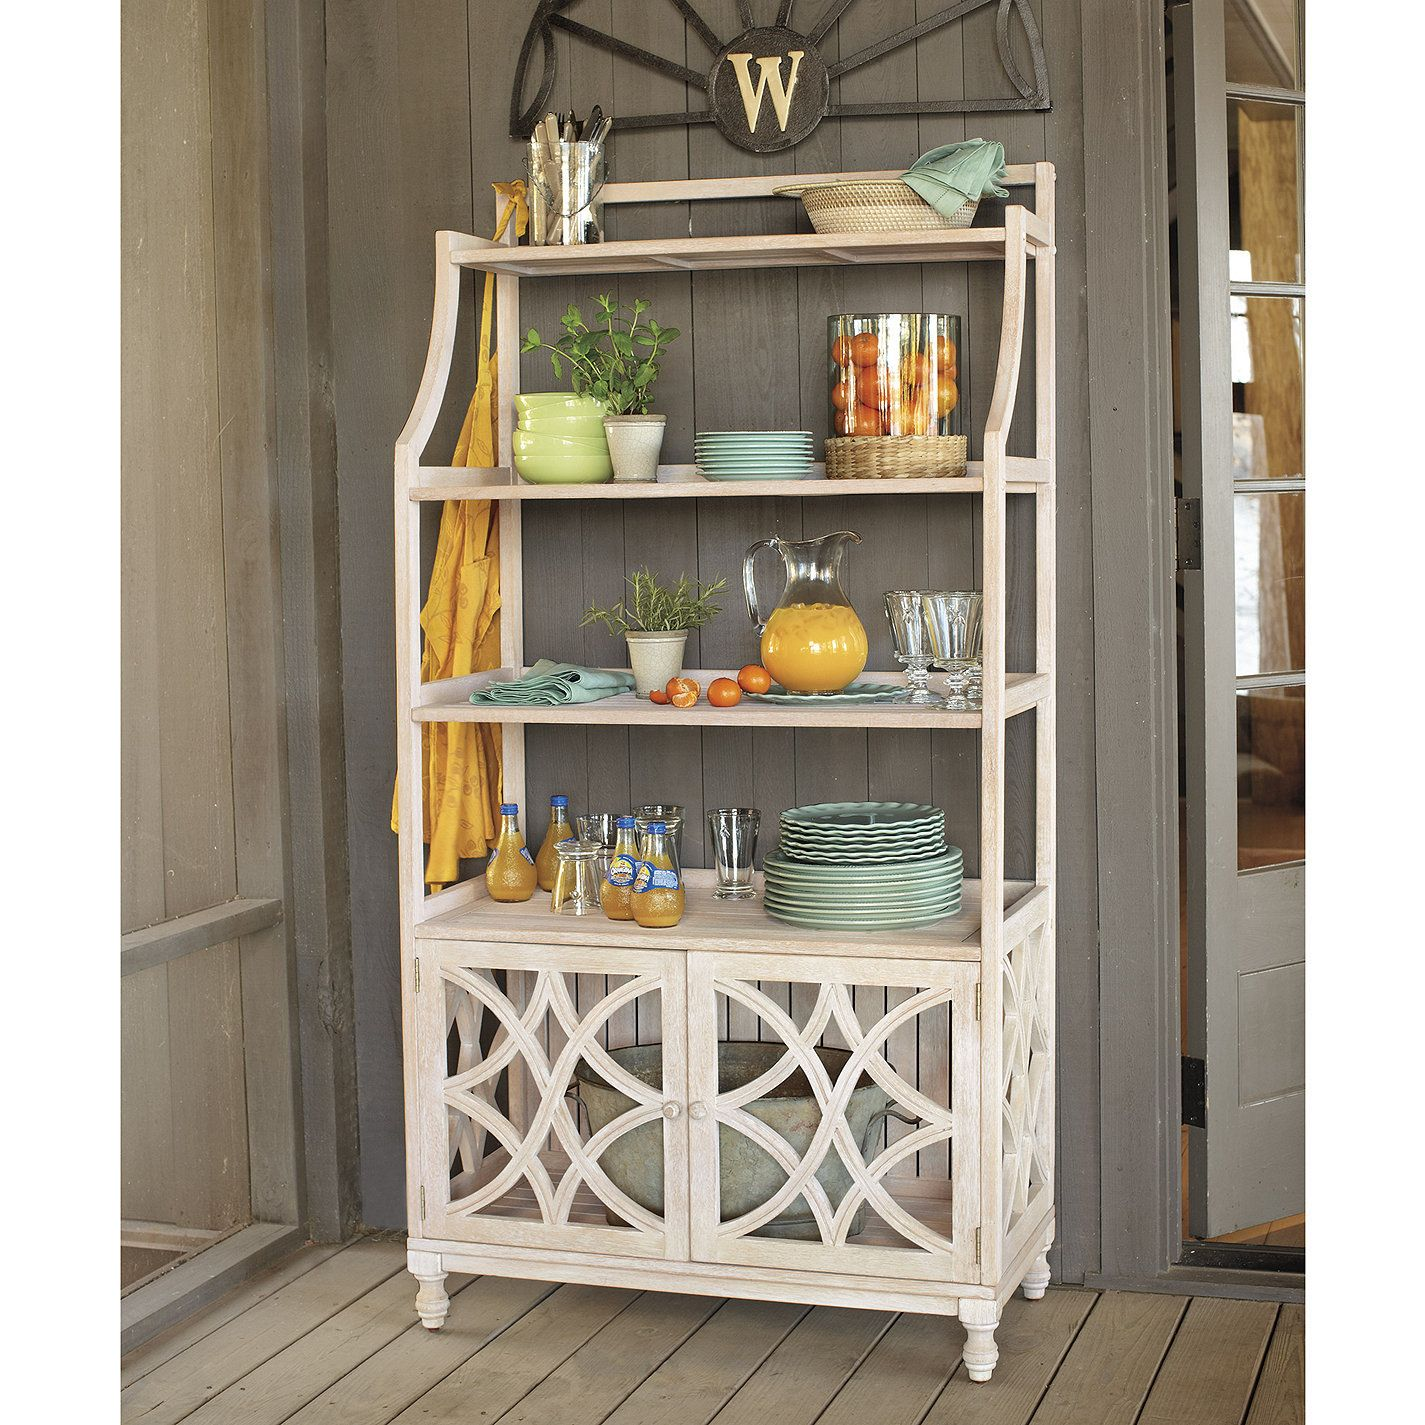 Corner Bakers Rack With Storage Ceylon Whitewash Baker's Rack  Bakers Rack Storage And Kitchens